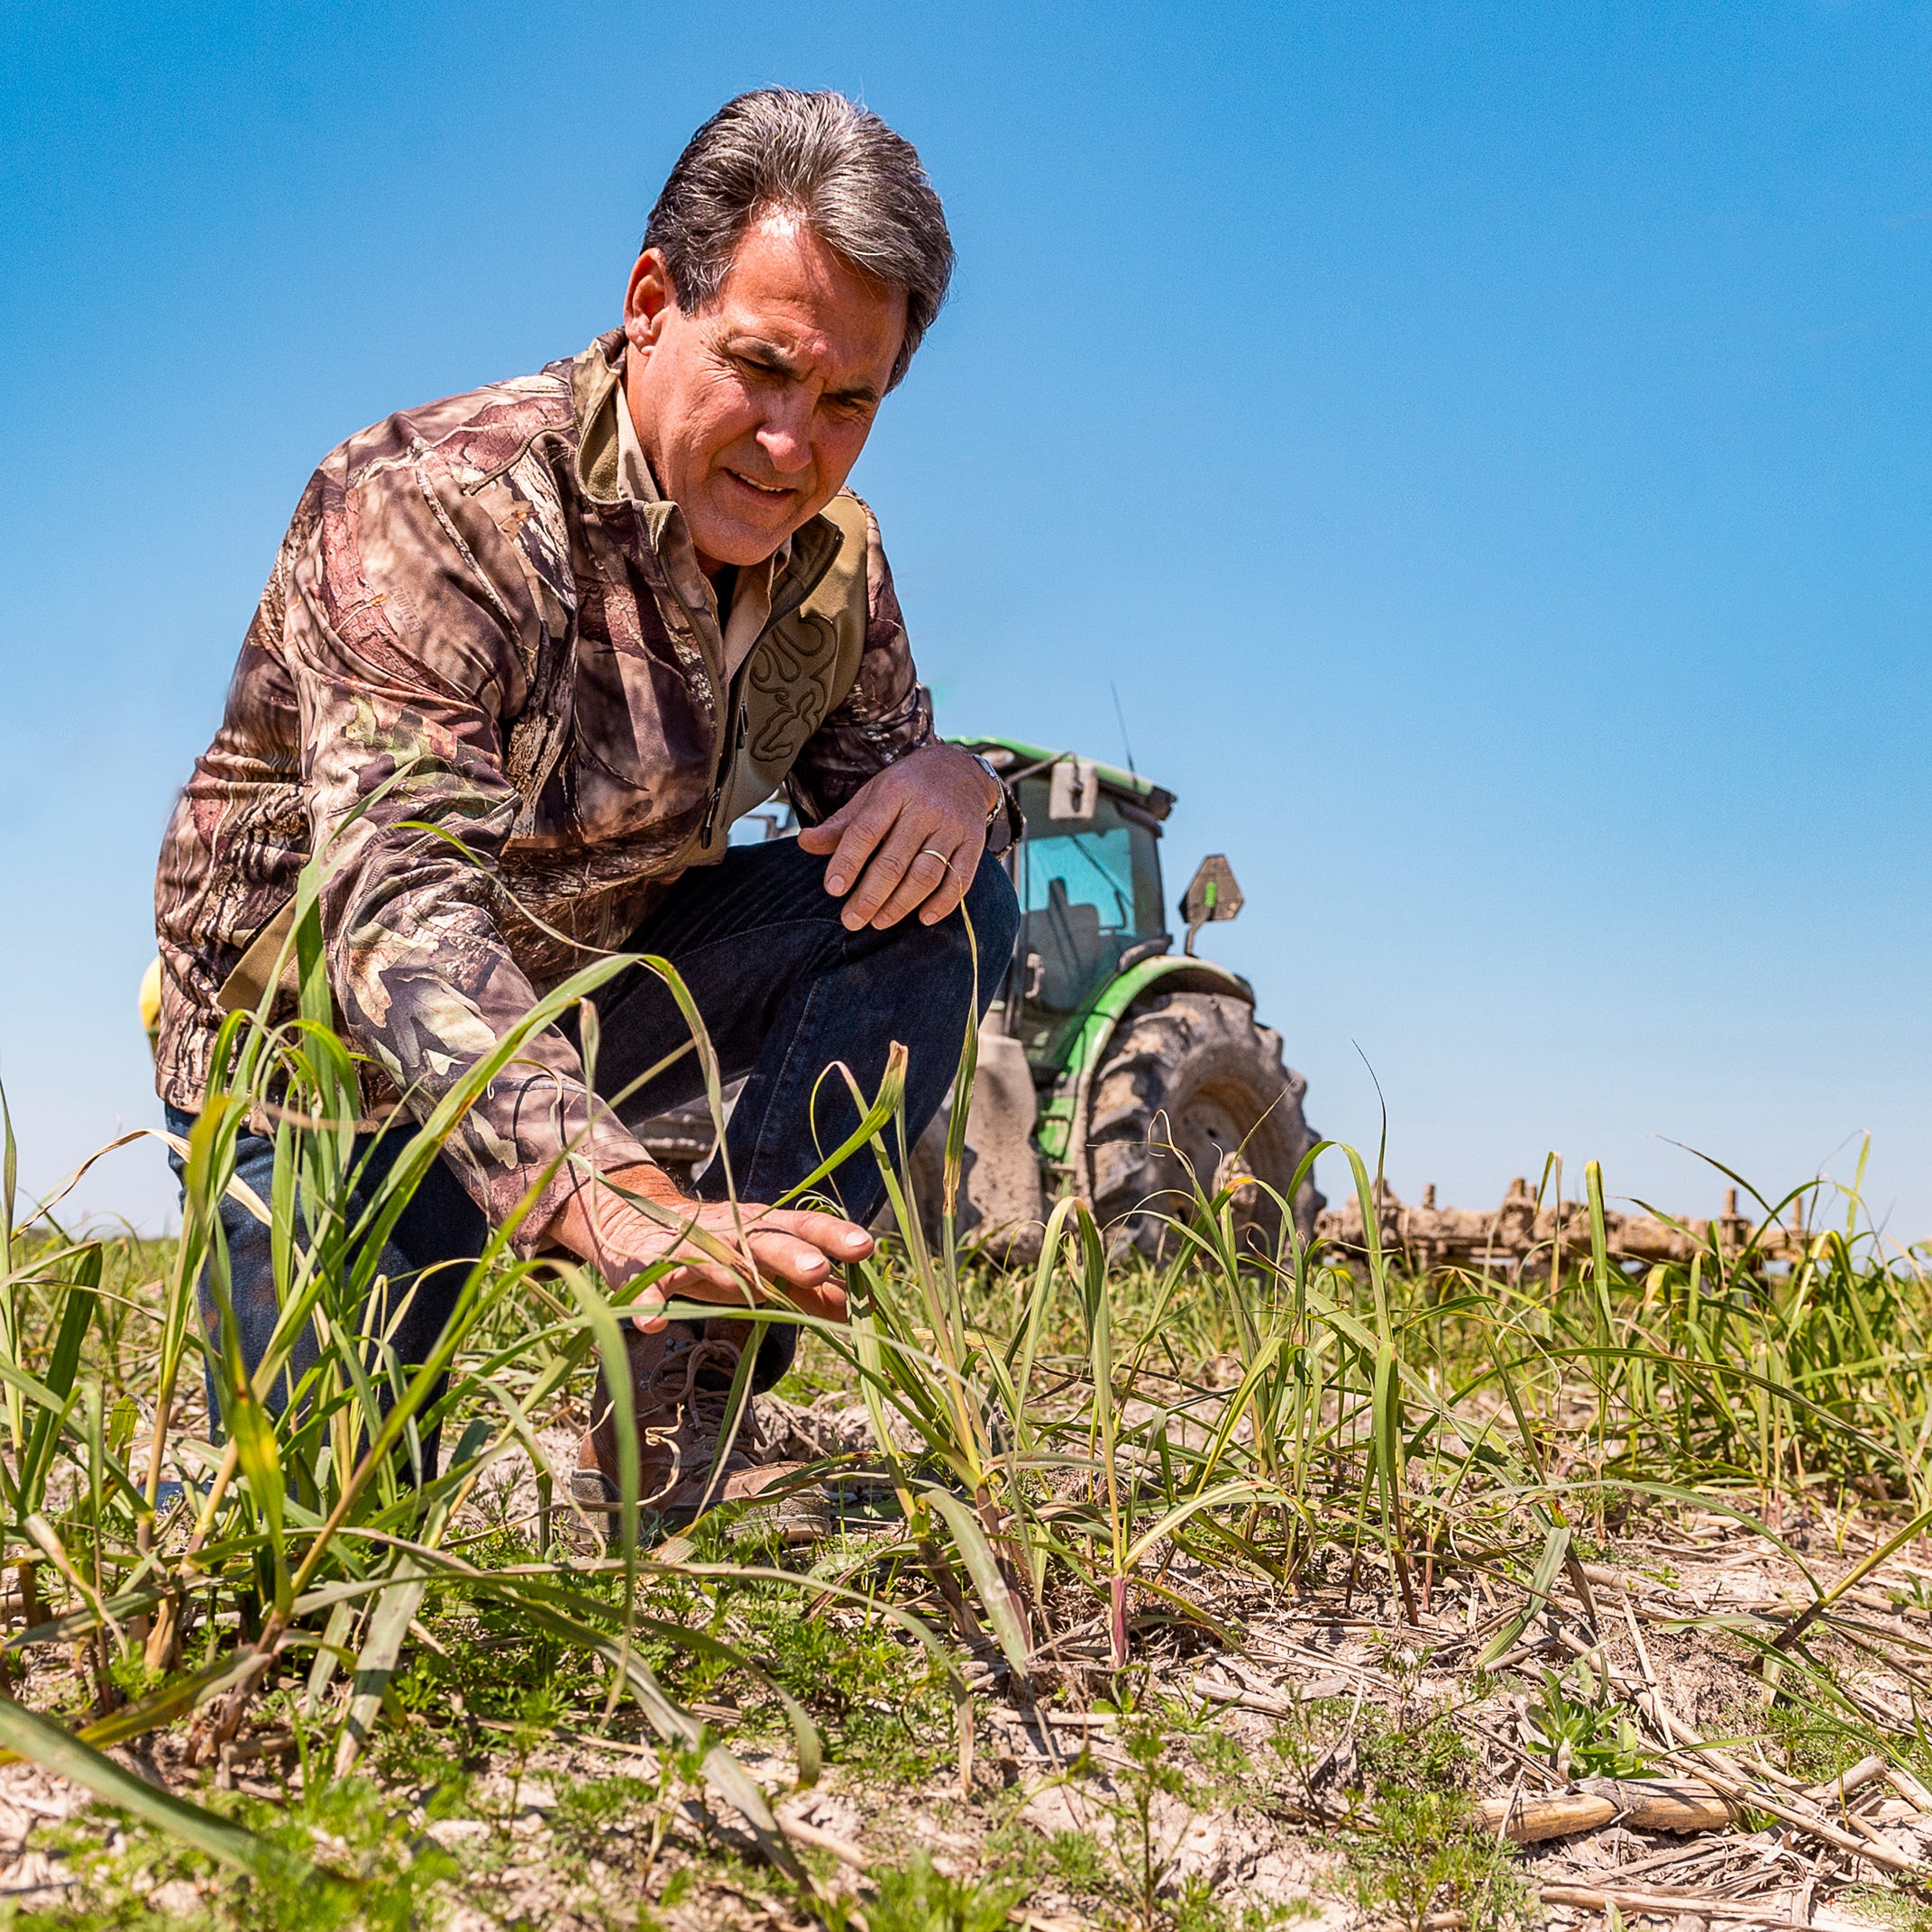 Raising sugarcane is south Louisiana way of life, positioned for growth